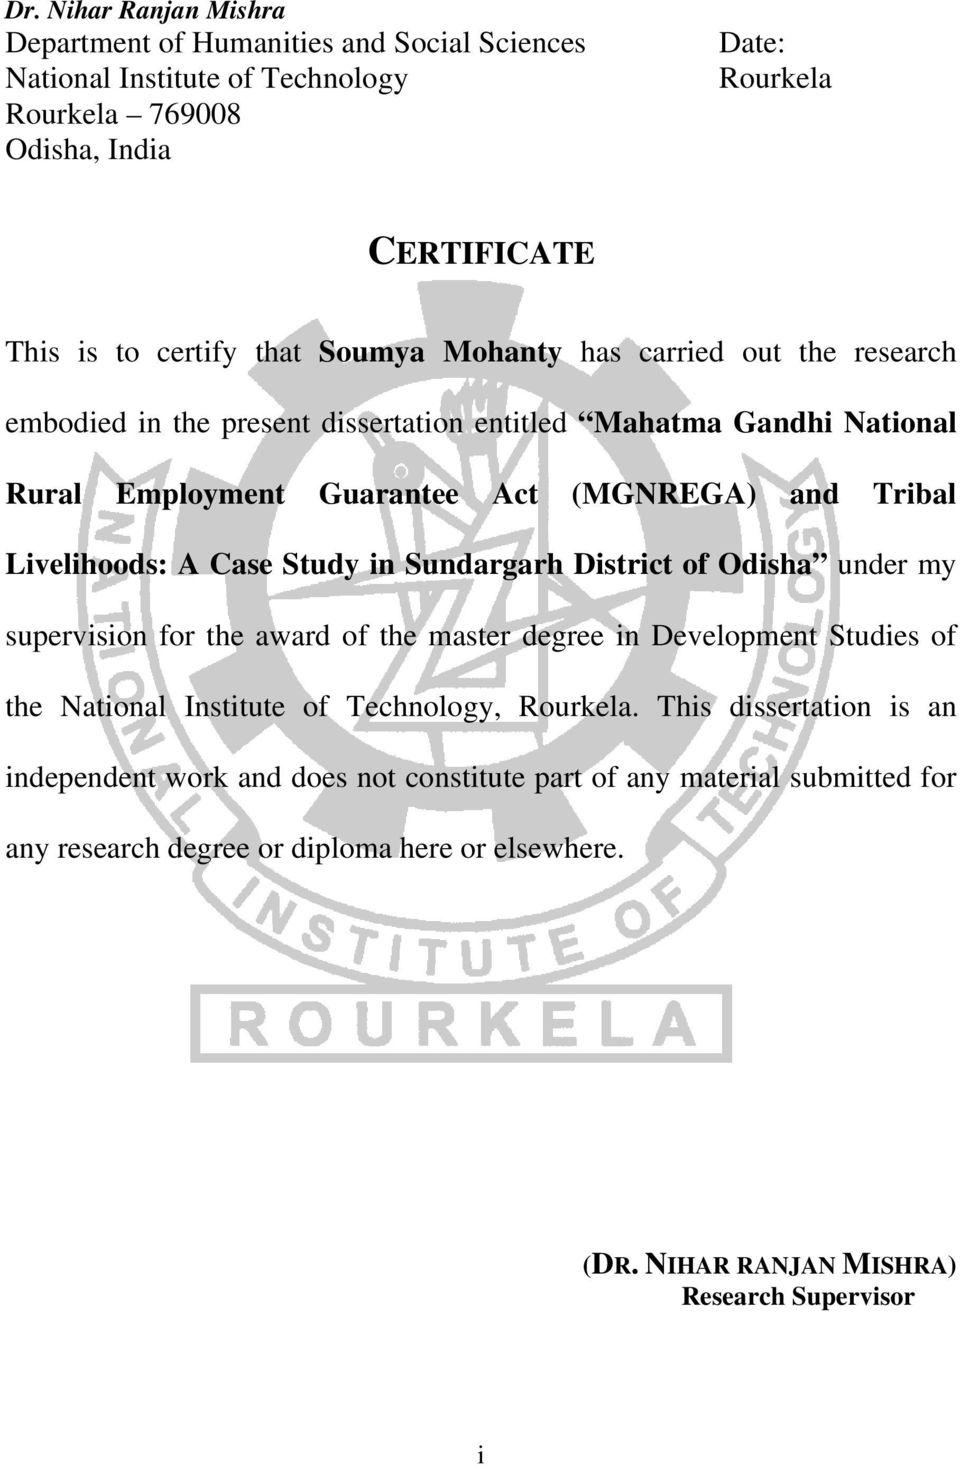 Case Study in Sundargarh District of Odisha under my supervision for the award of the master degree in Development Studies of the National Institute of Technology, Rourkela.